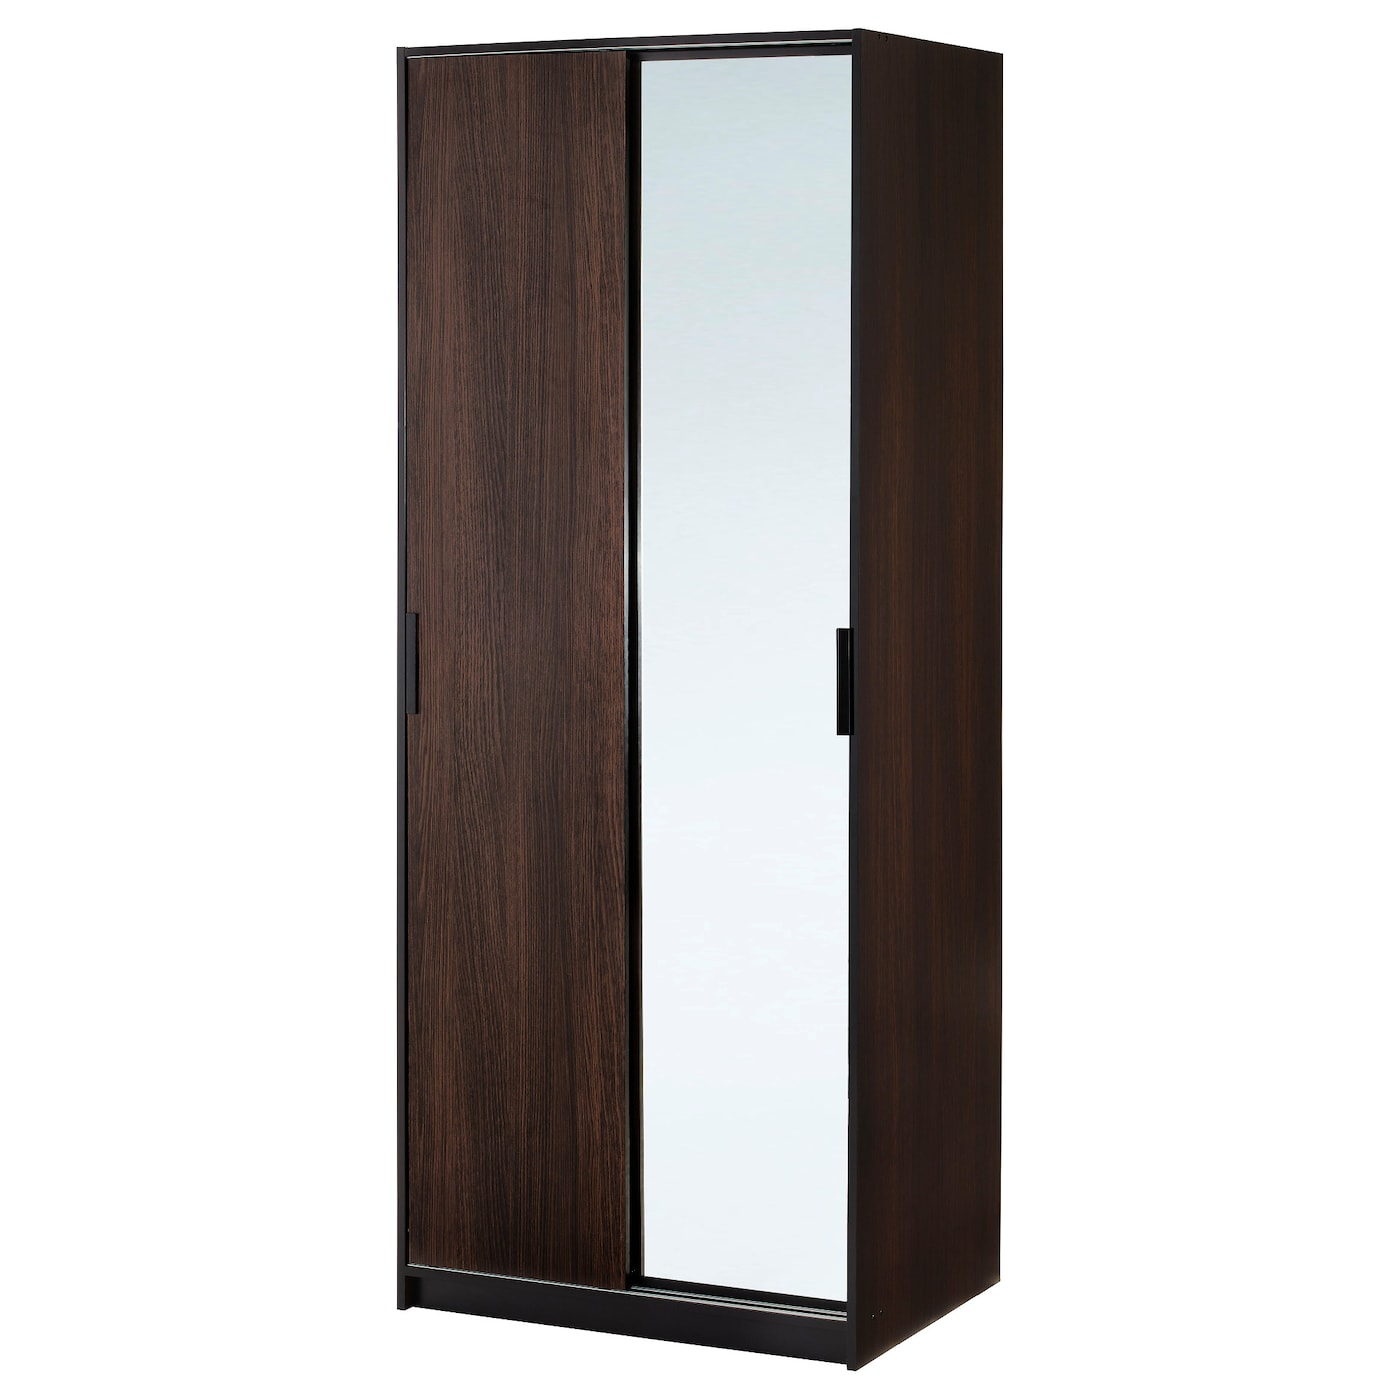 Trysil wardrobe w sliding doors 4 drawers white 118x61x202 for Armoire penderie avec miroir